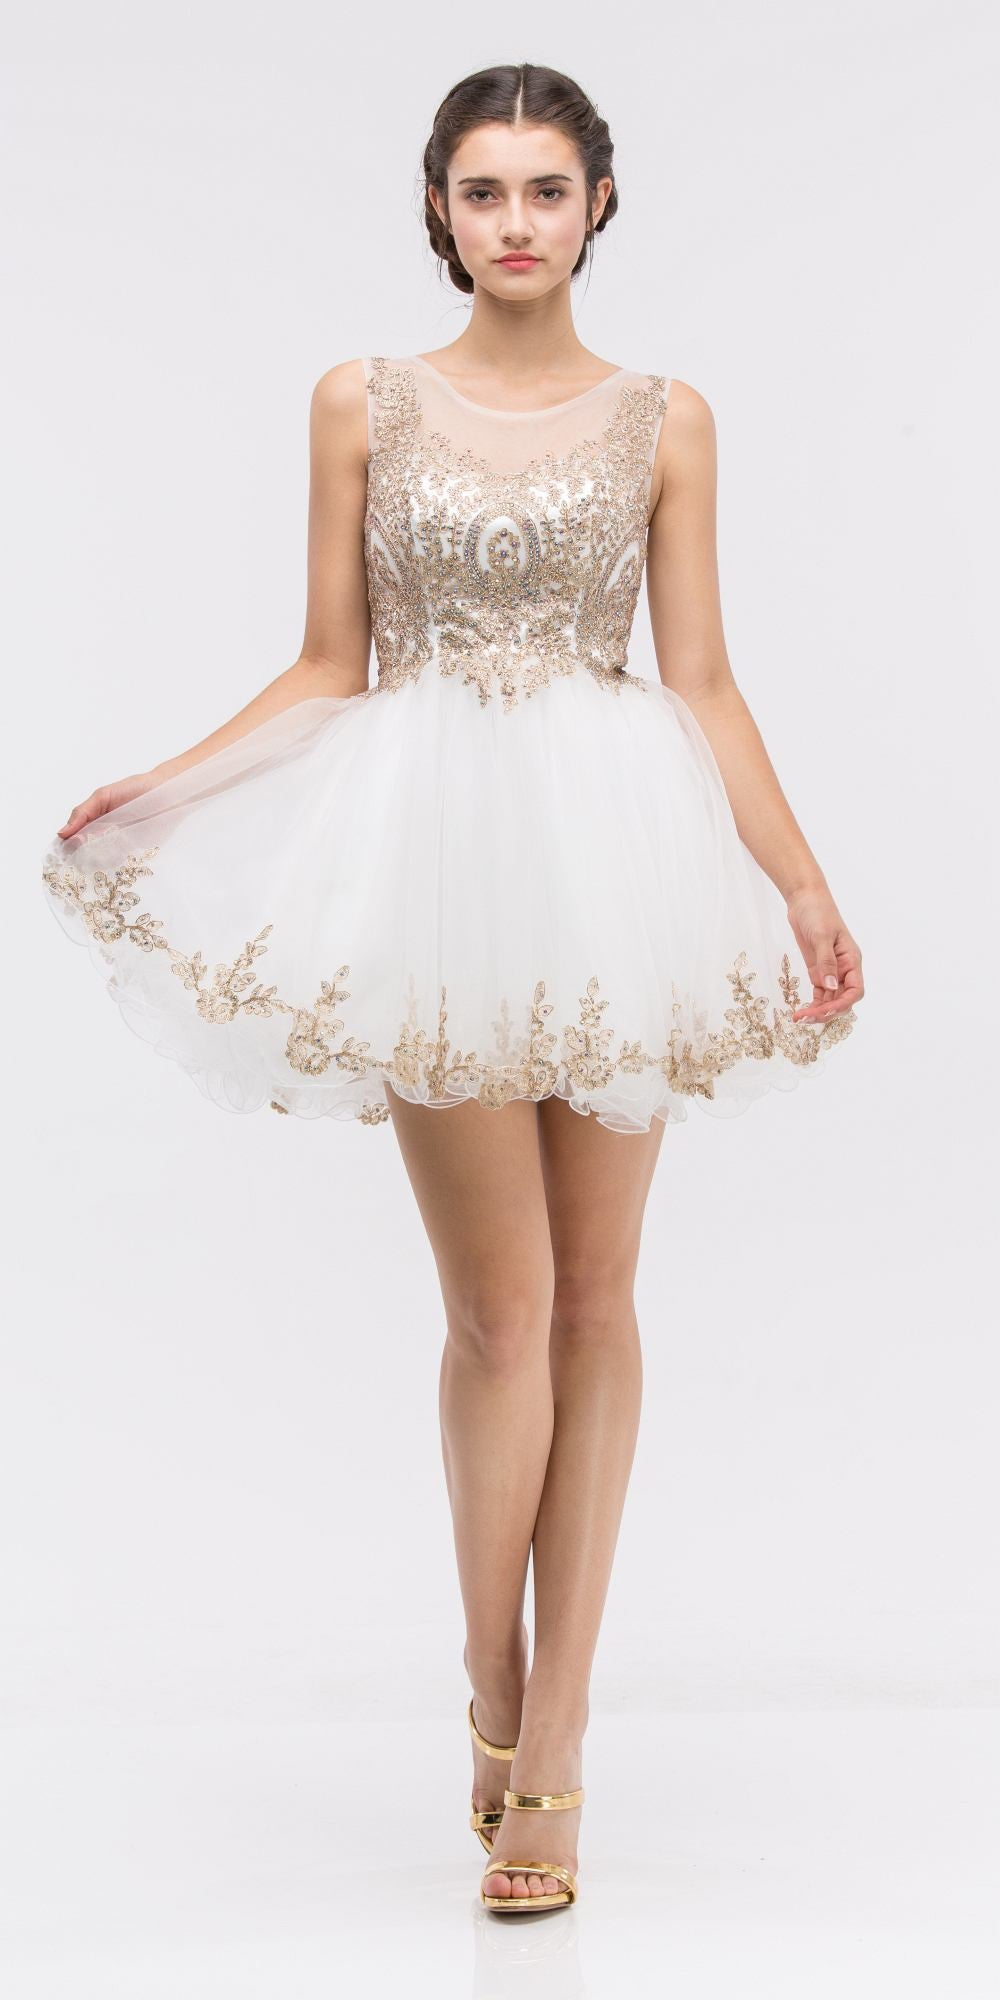 a47b3a356f7 ... Ivory Mesh Short Homecoming Dress with Appliqued Bodice and Hem ...